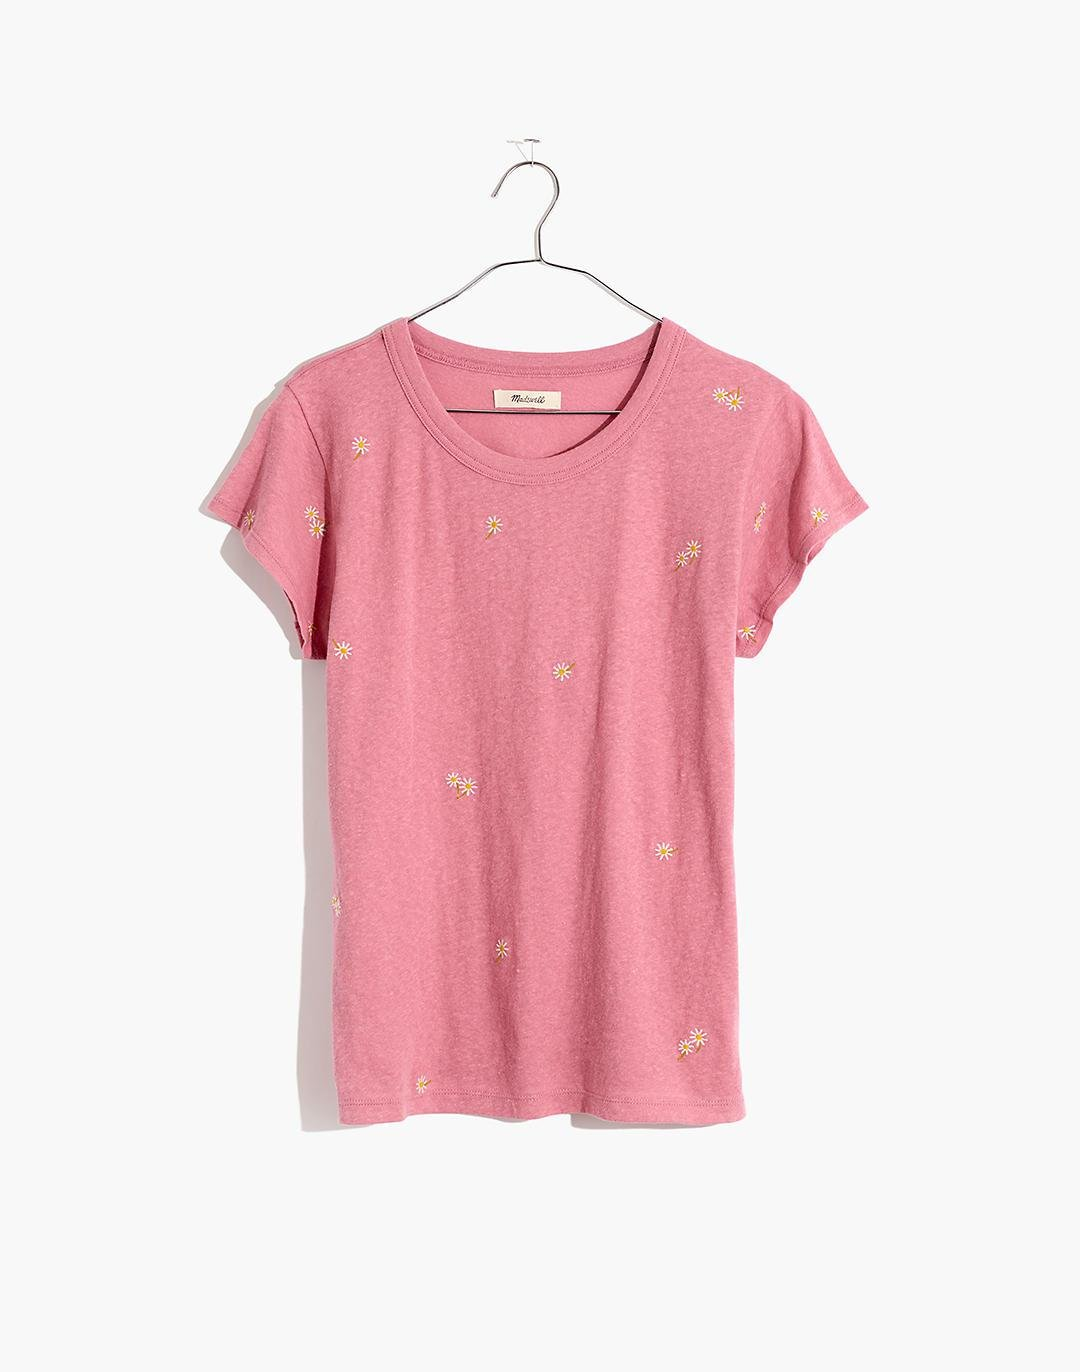 The Daisy Embroidered Perfect Vintage Tee